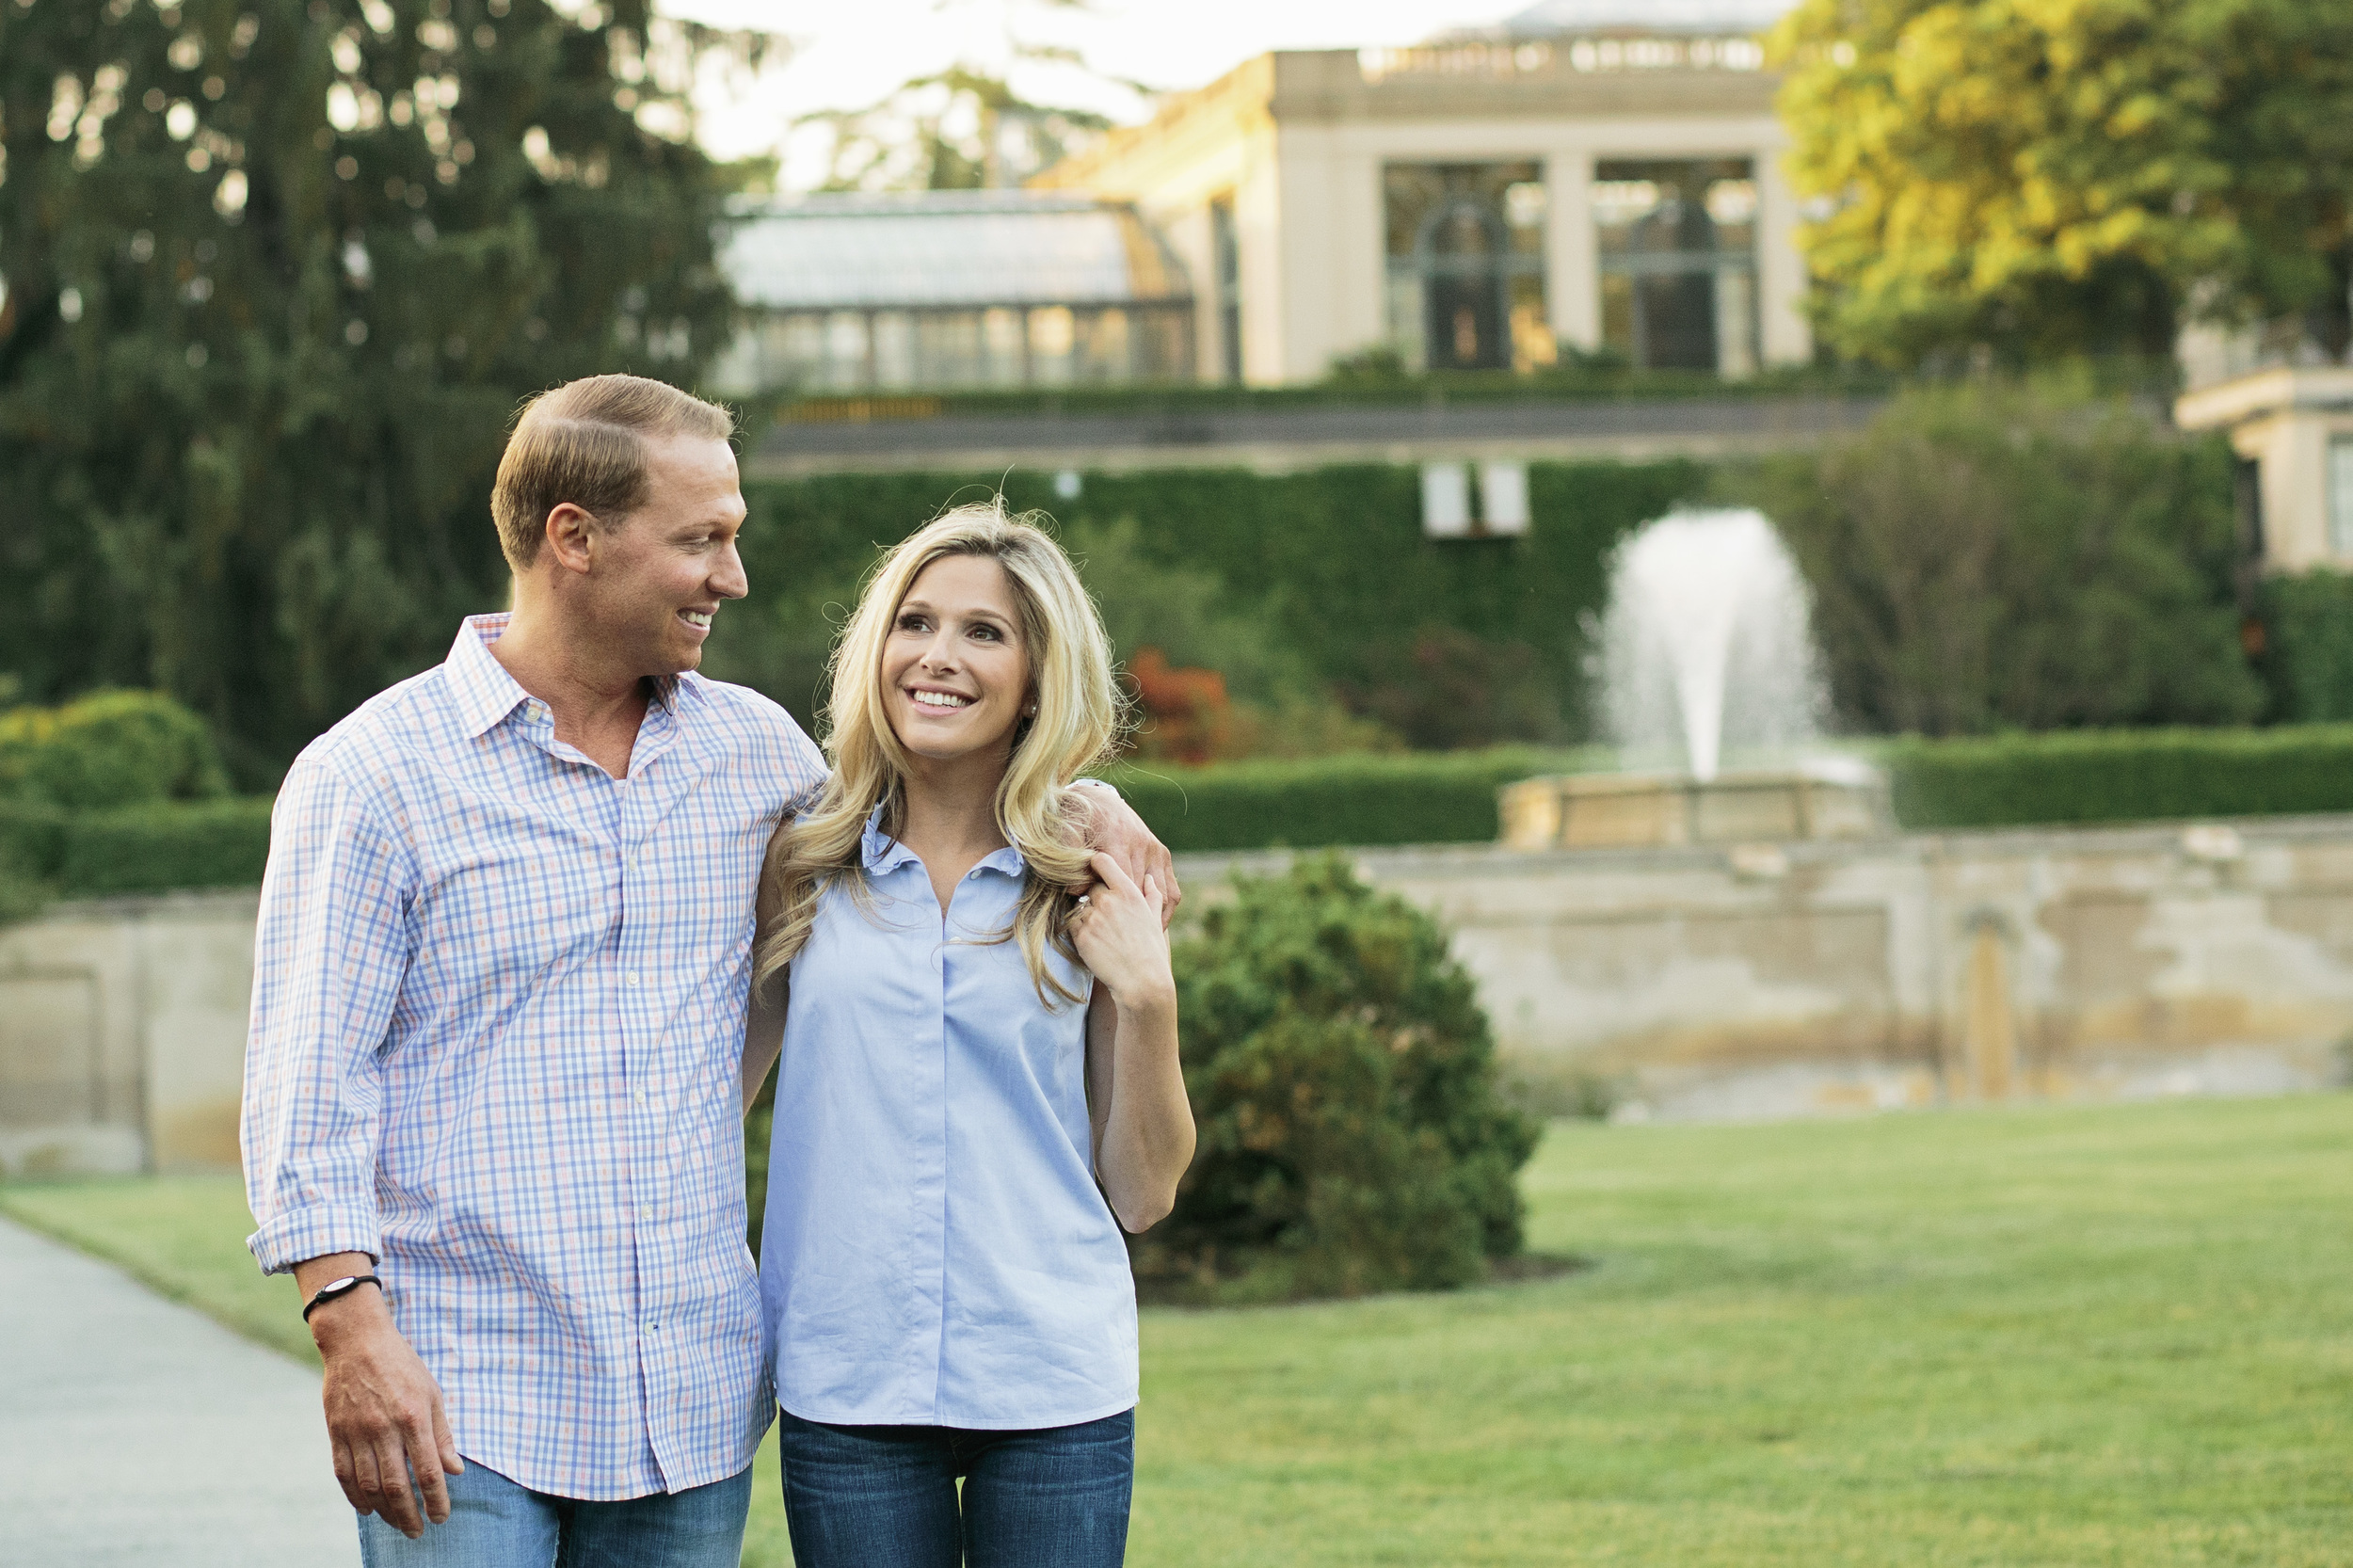 Chad and Amy's engagement session was photographed at the beautiful Longwood Gardens in Longwood, Pennsylvania by Hudson Nichols photography.